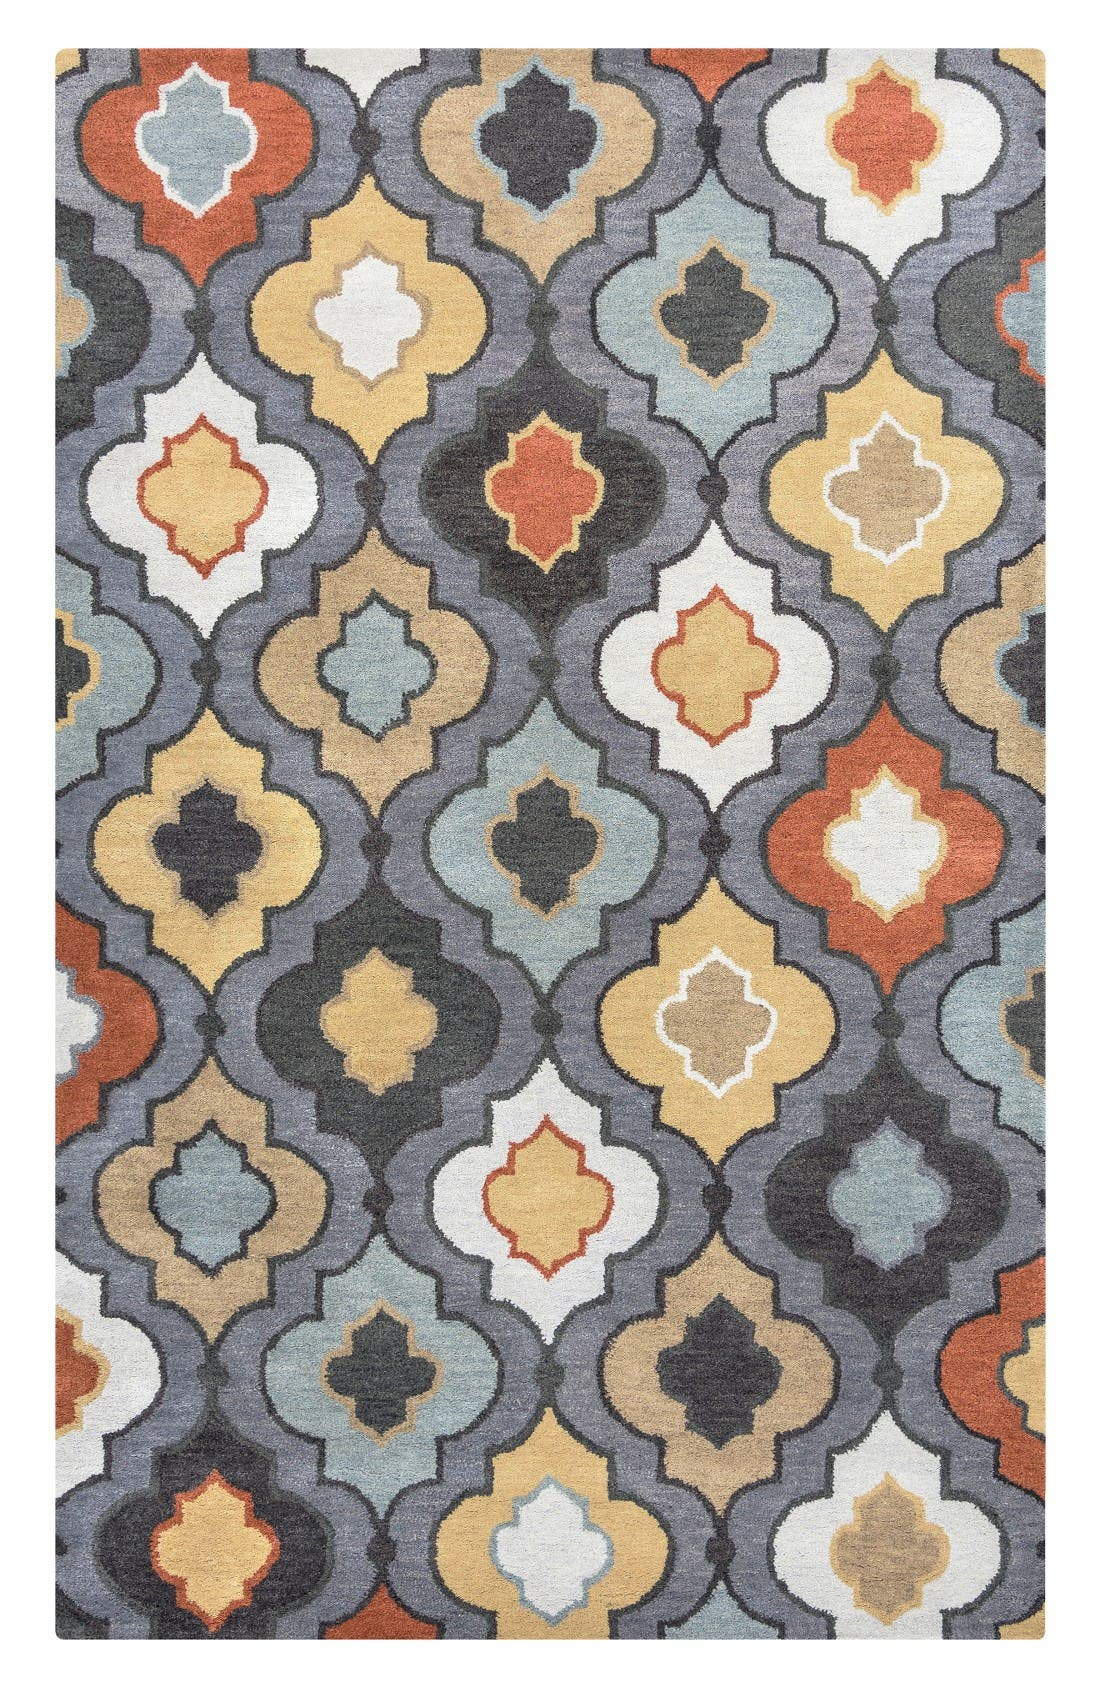 Alternate Image 1 Selected - Rizzy Home 'Quatrefoil' Hand Tufted Wool Area Rug